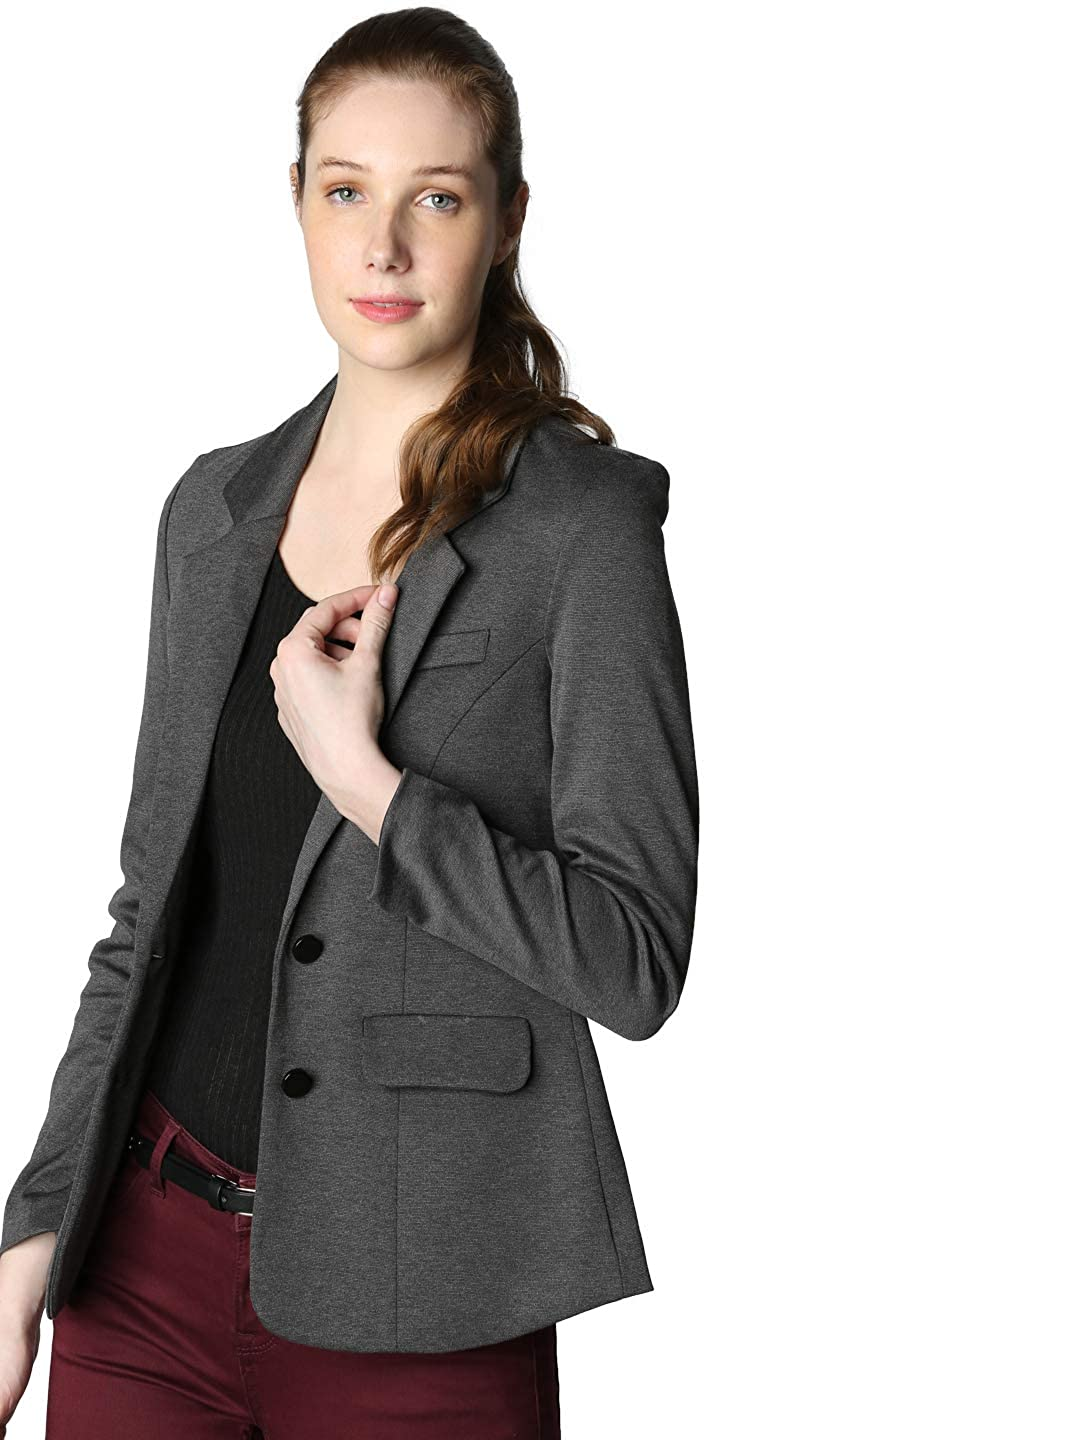 Girlistan - How to Dressing Appropriately for office? Workspace dressing